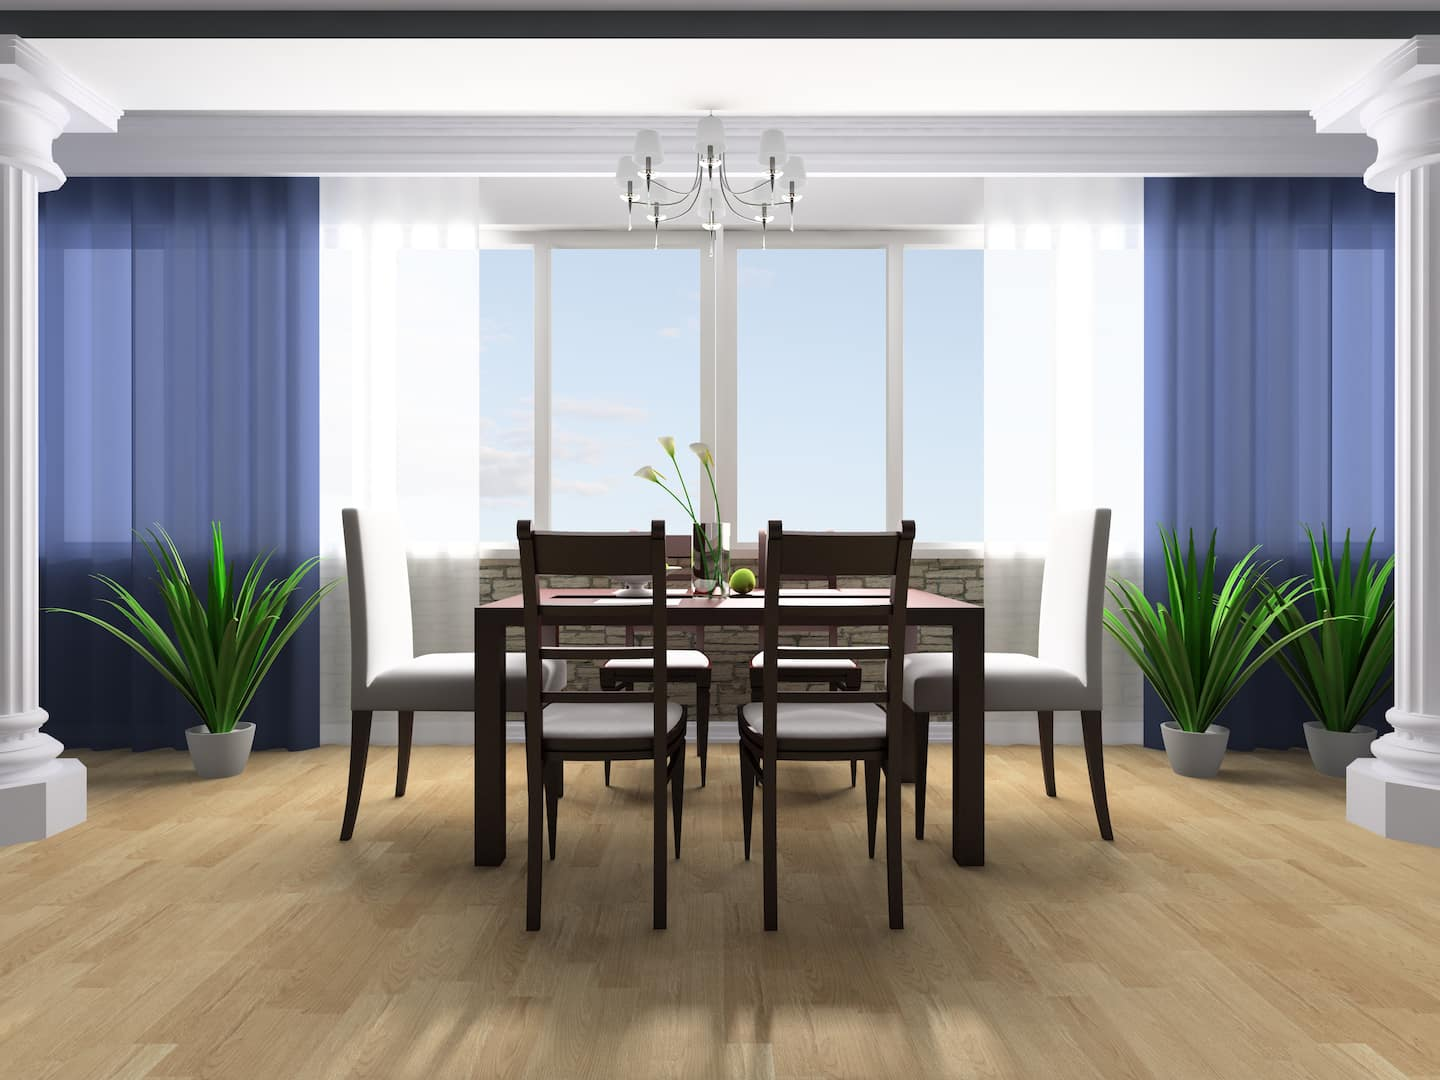 3D Rendering Of A Contemporary Dining Room With Sheer Blue Drapes Layered Over White